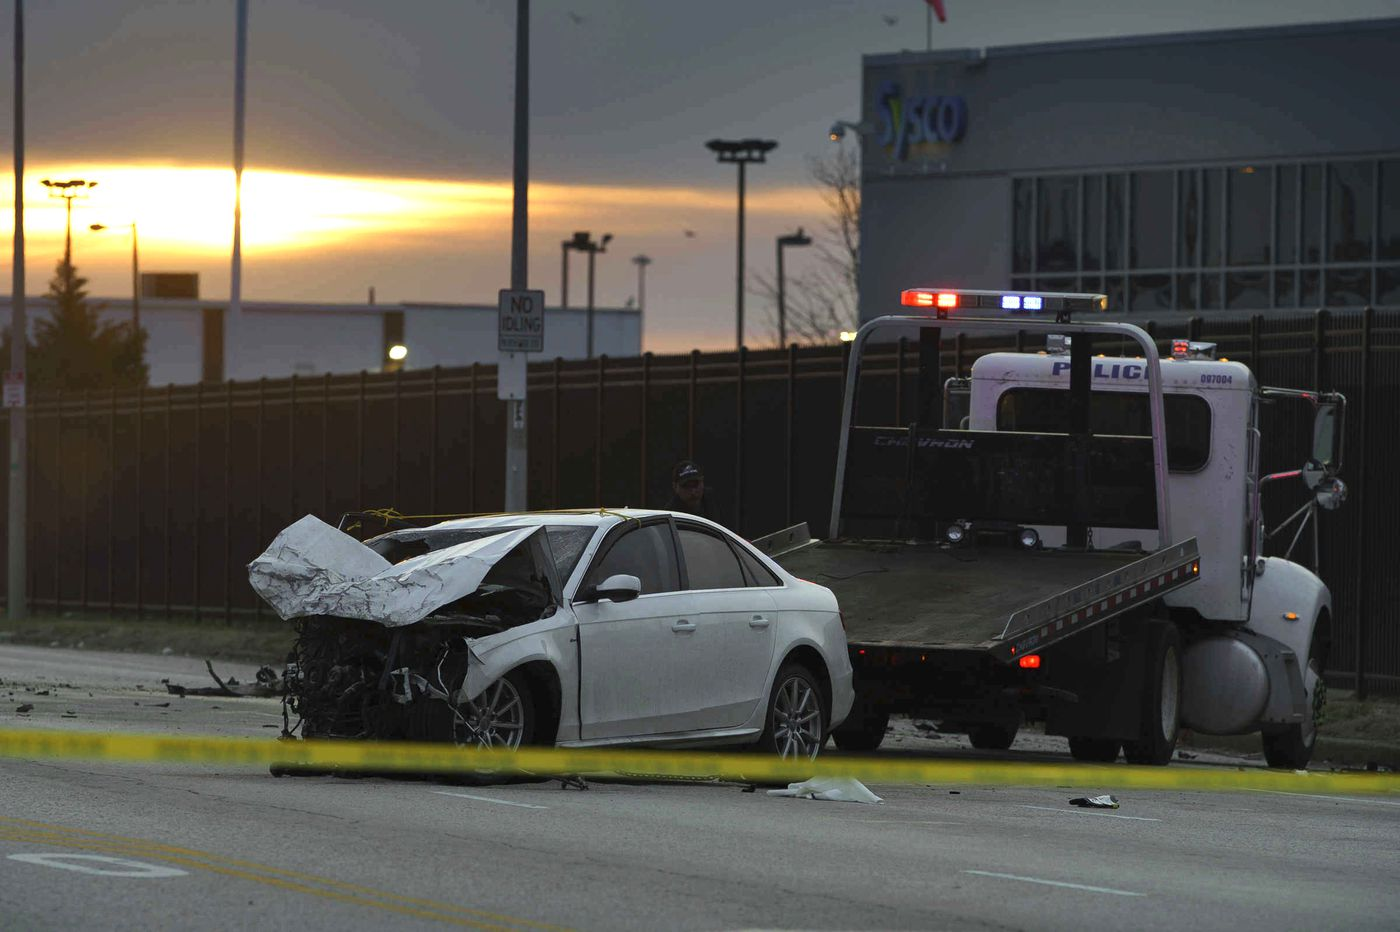 Driver charged with homicide in South Philly crash that killed 3